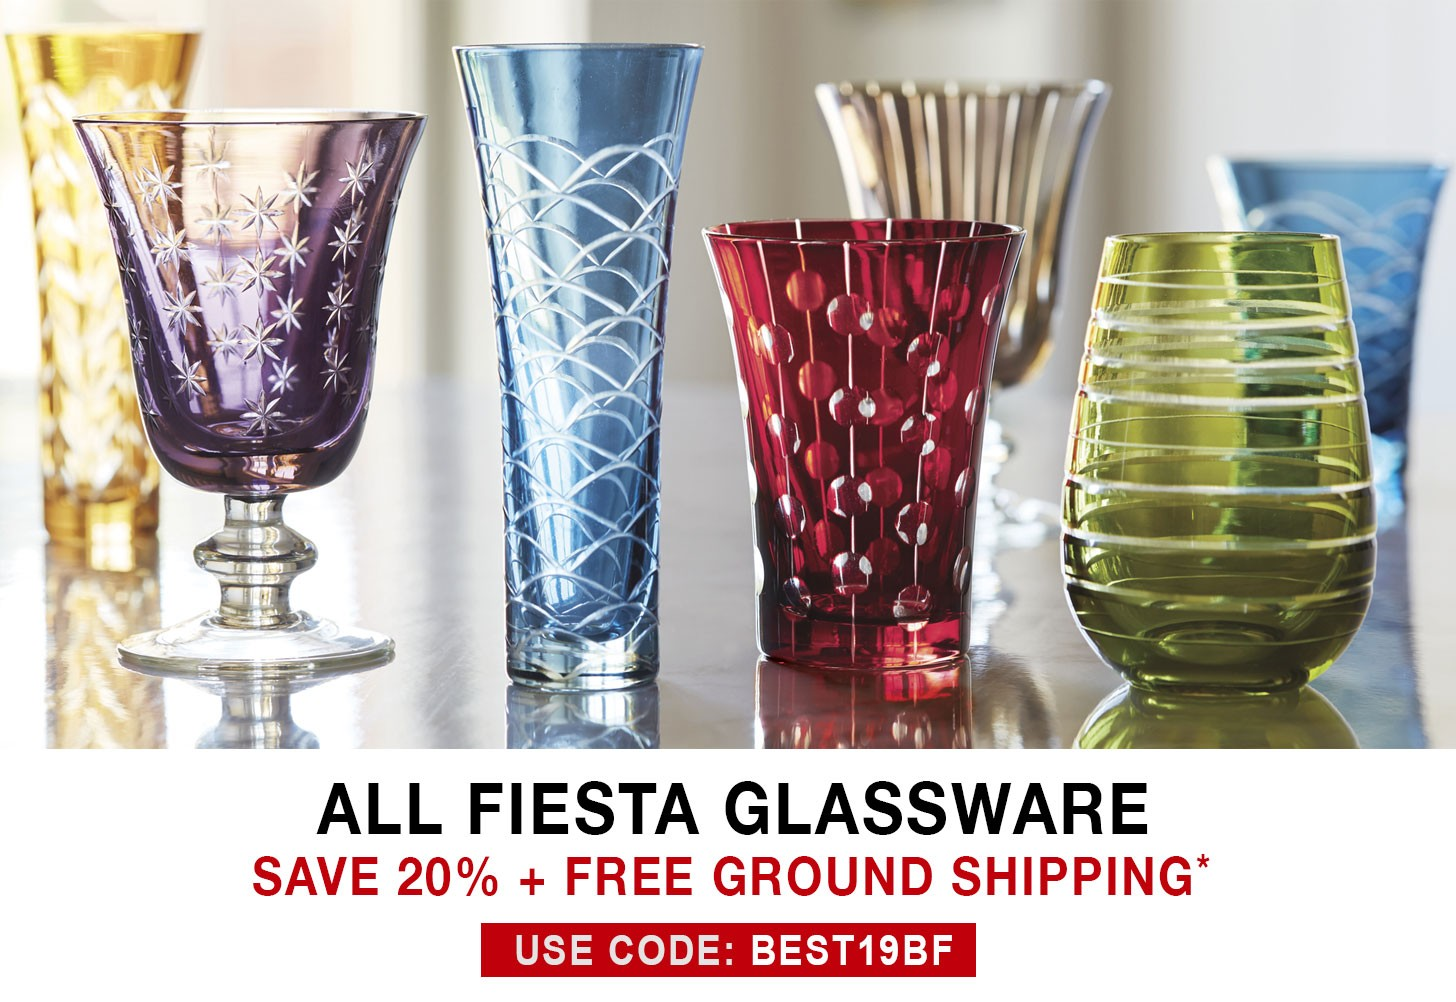 Fiesta Glassware - 20% Off + Free Ground Shipping - Use Code BEST19BF